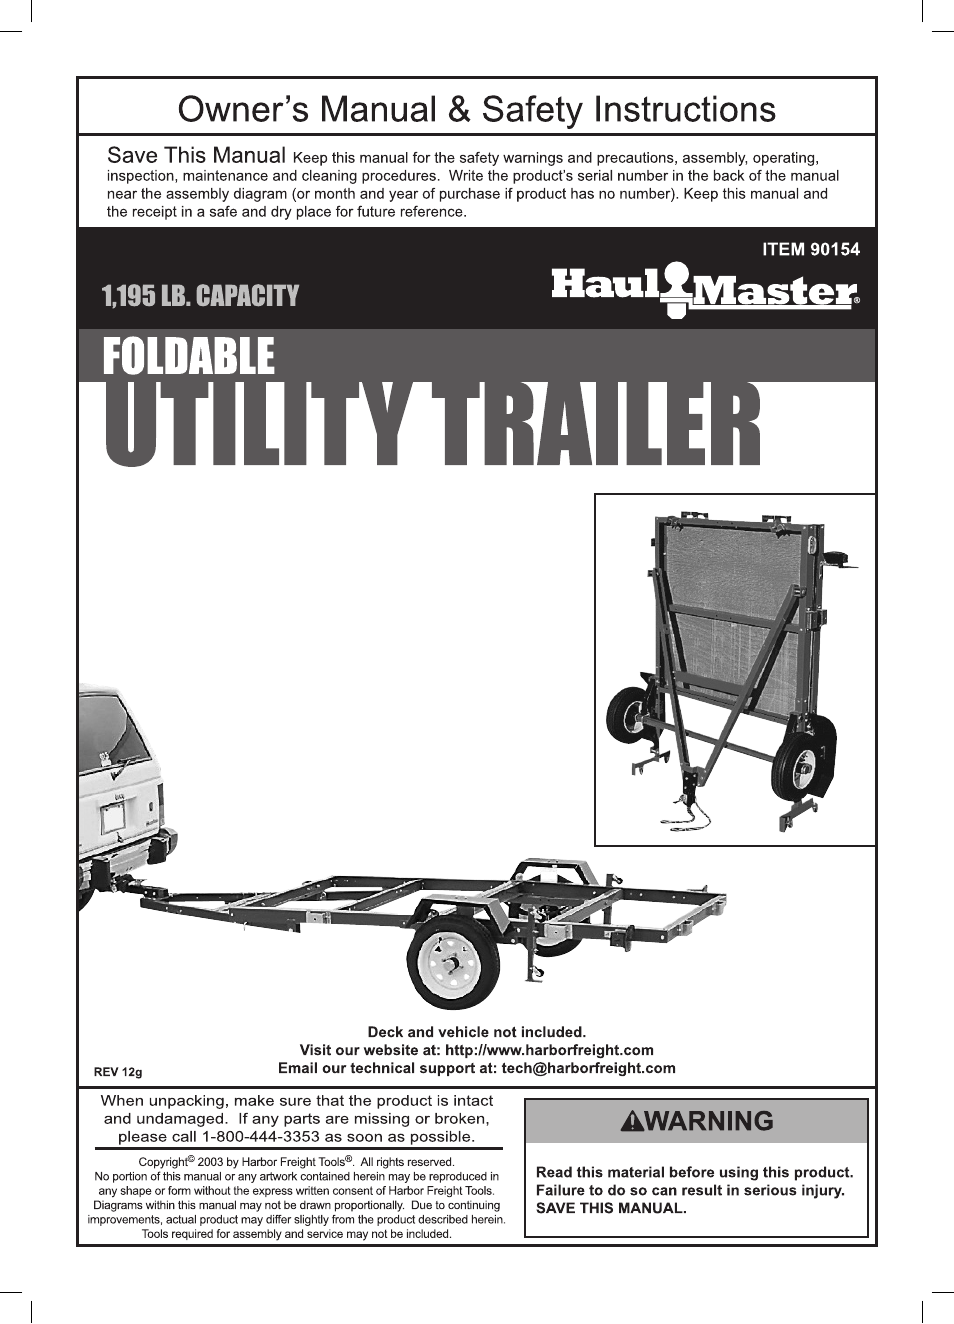 Harbor Freight Tools Foldable Utility Trailer 90154 User Manual | 28 pages